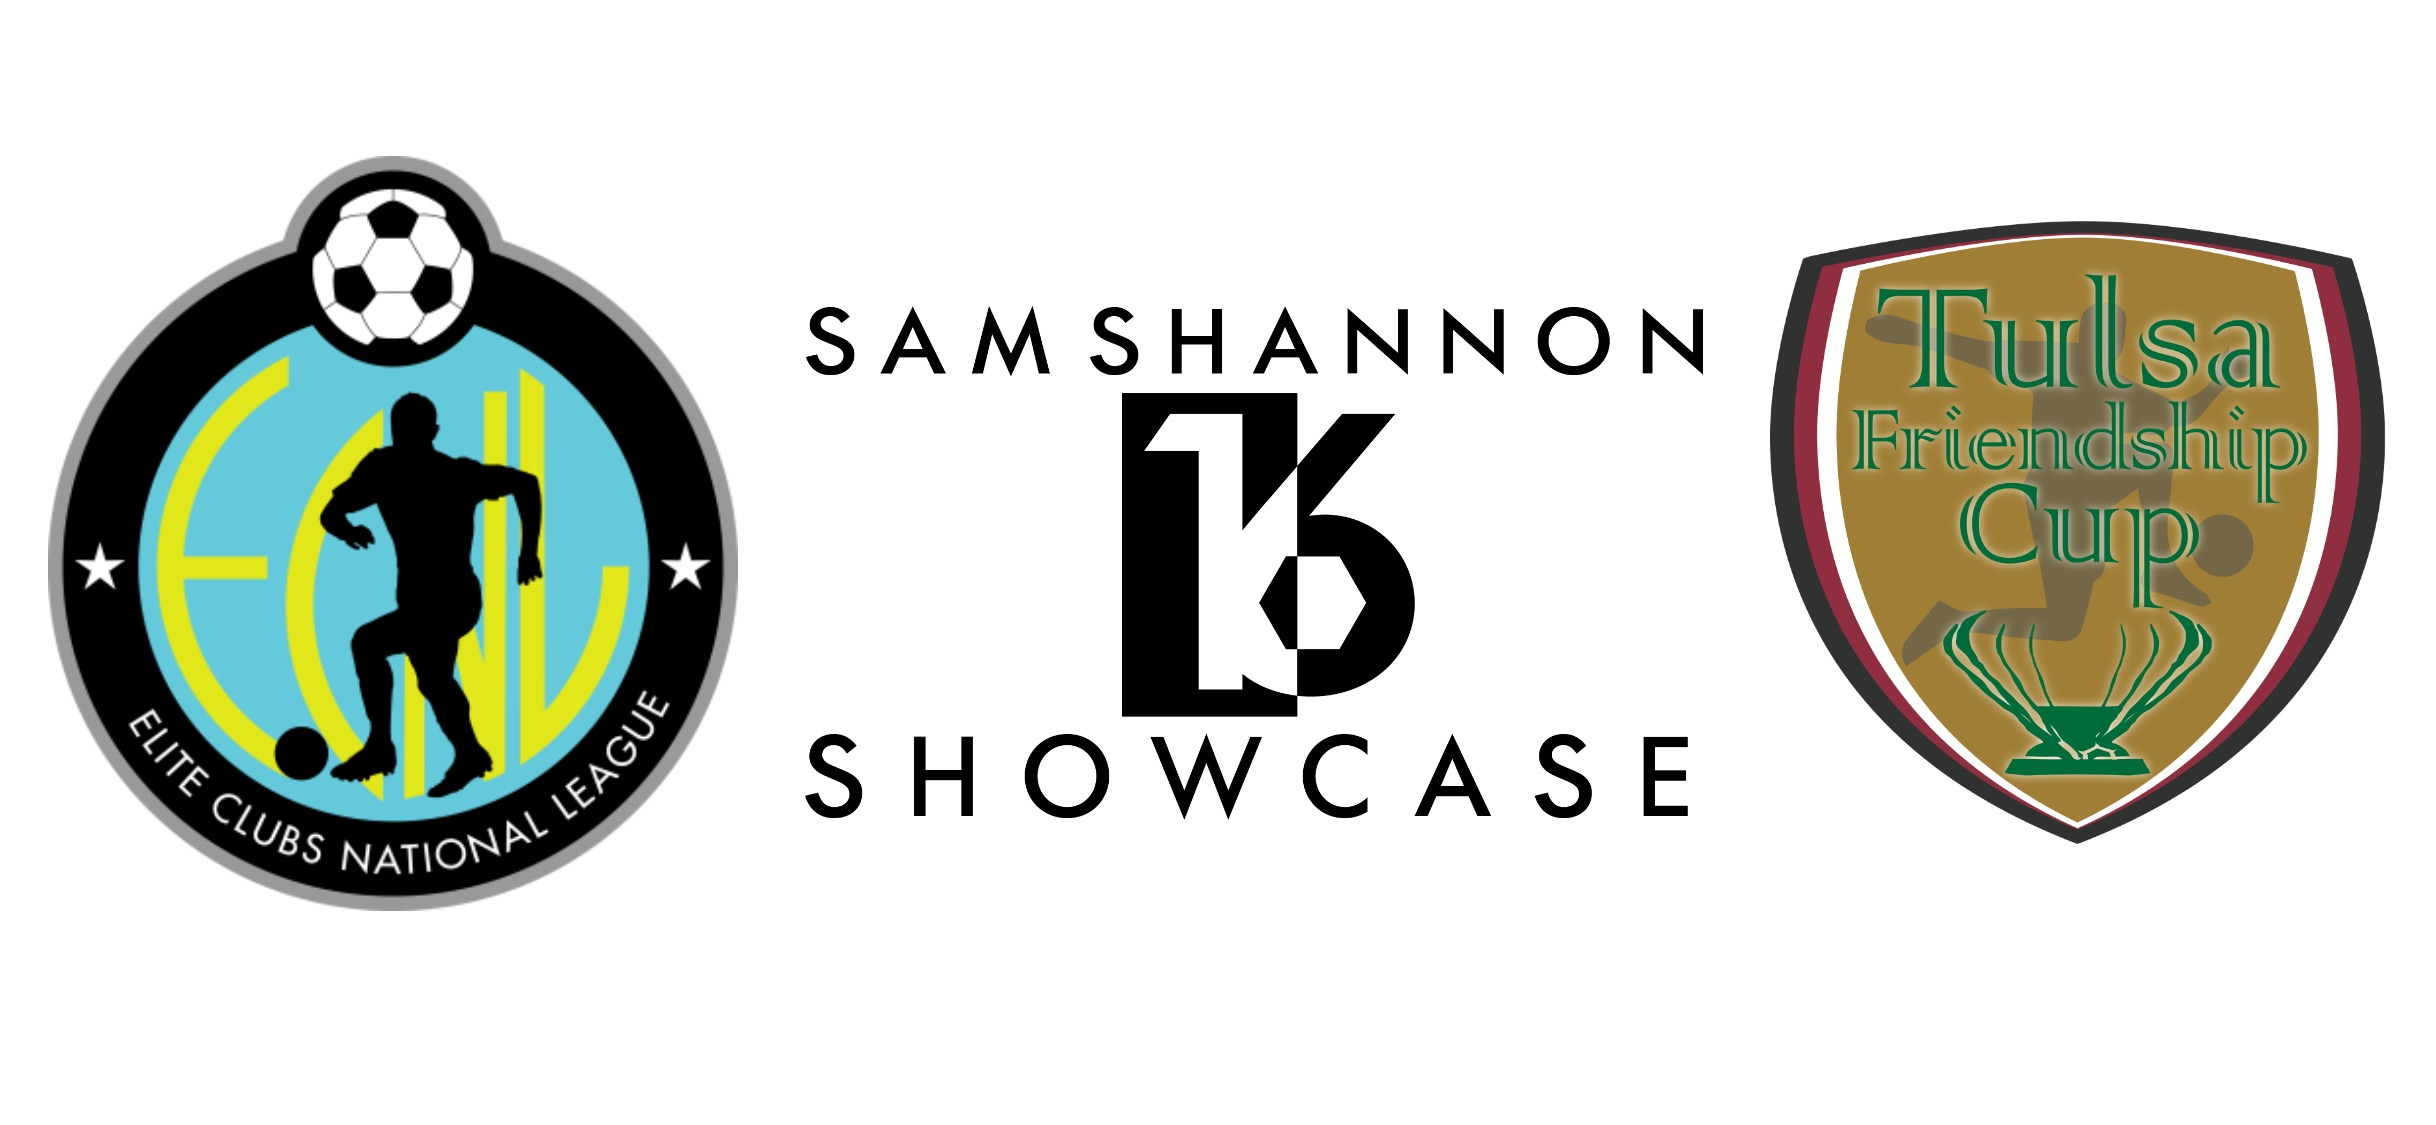 adidas Sam Shannon College Showcase